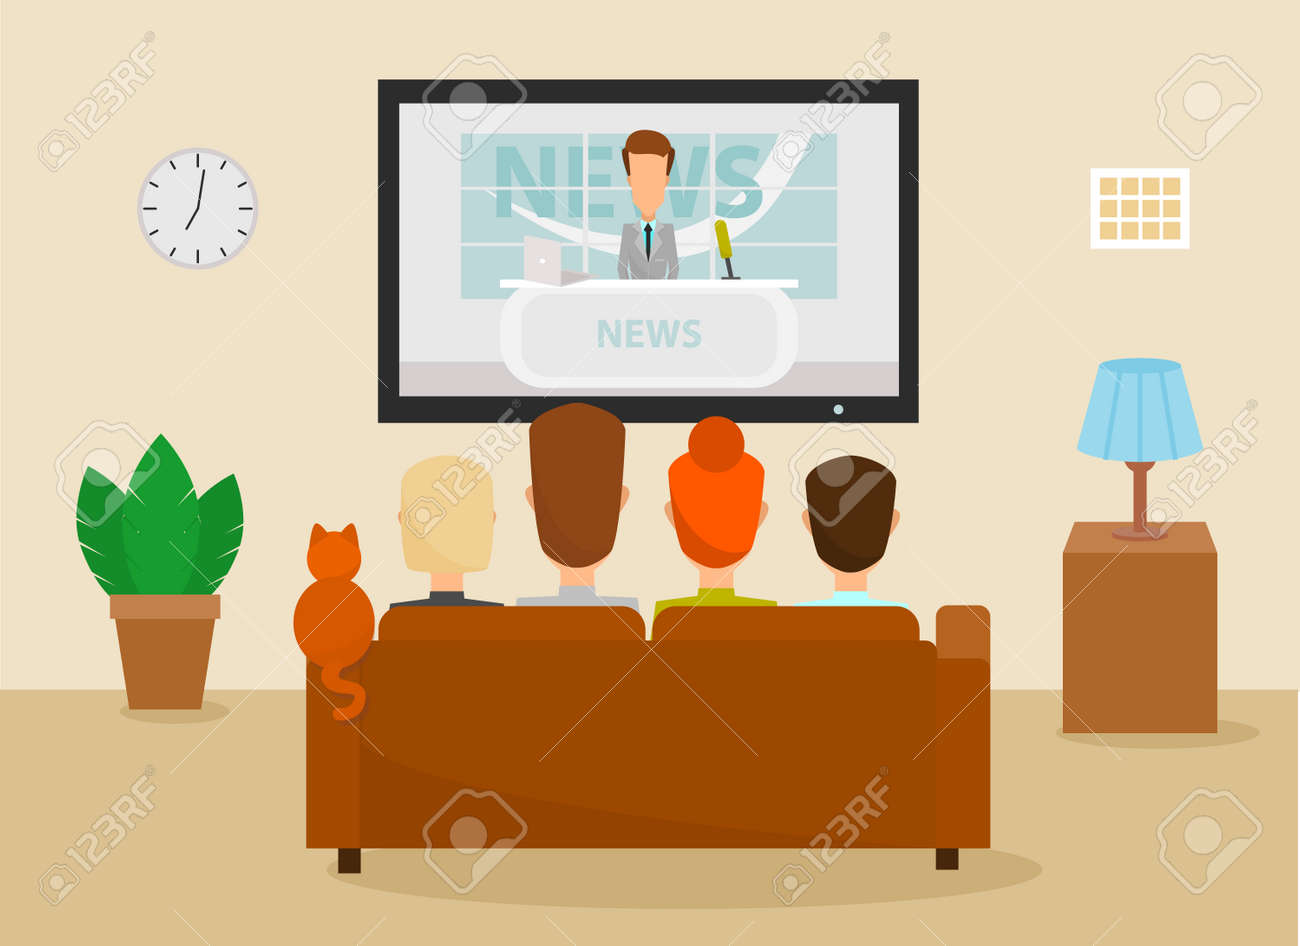 Family with cat watching TV daily news program sitting on the couch at home in the living room. Vector illustration in a cartoon style - 85863445